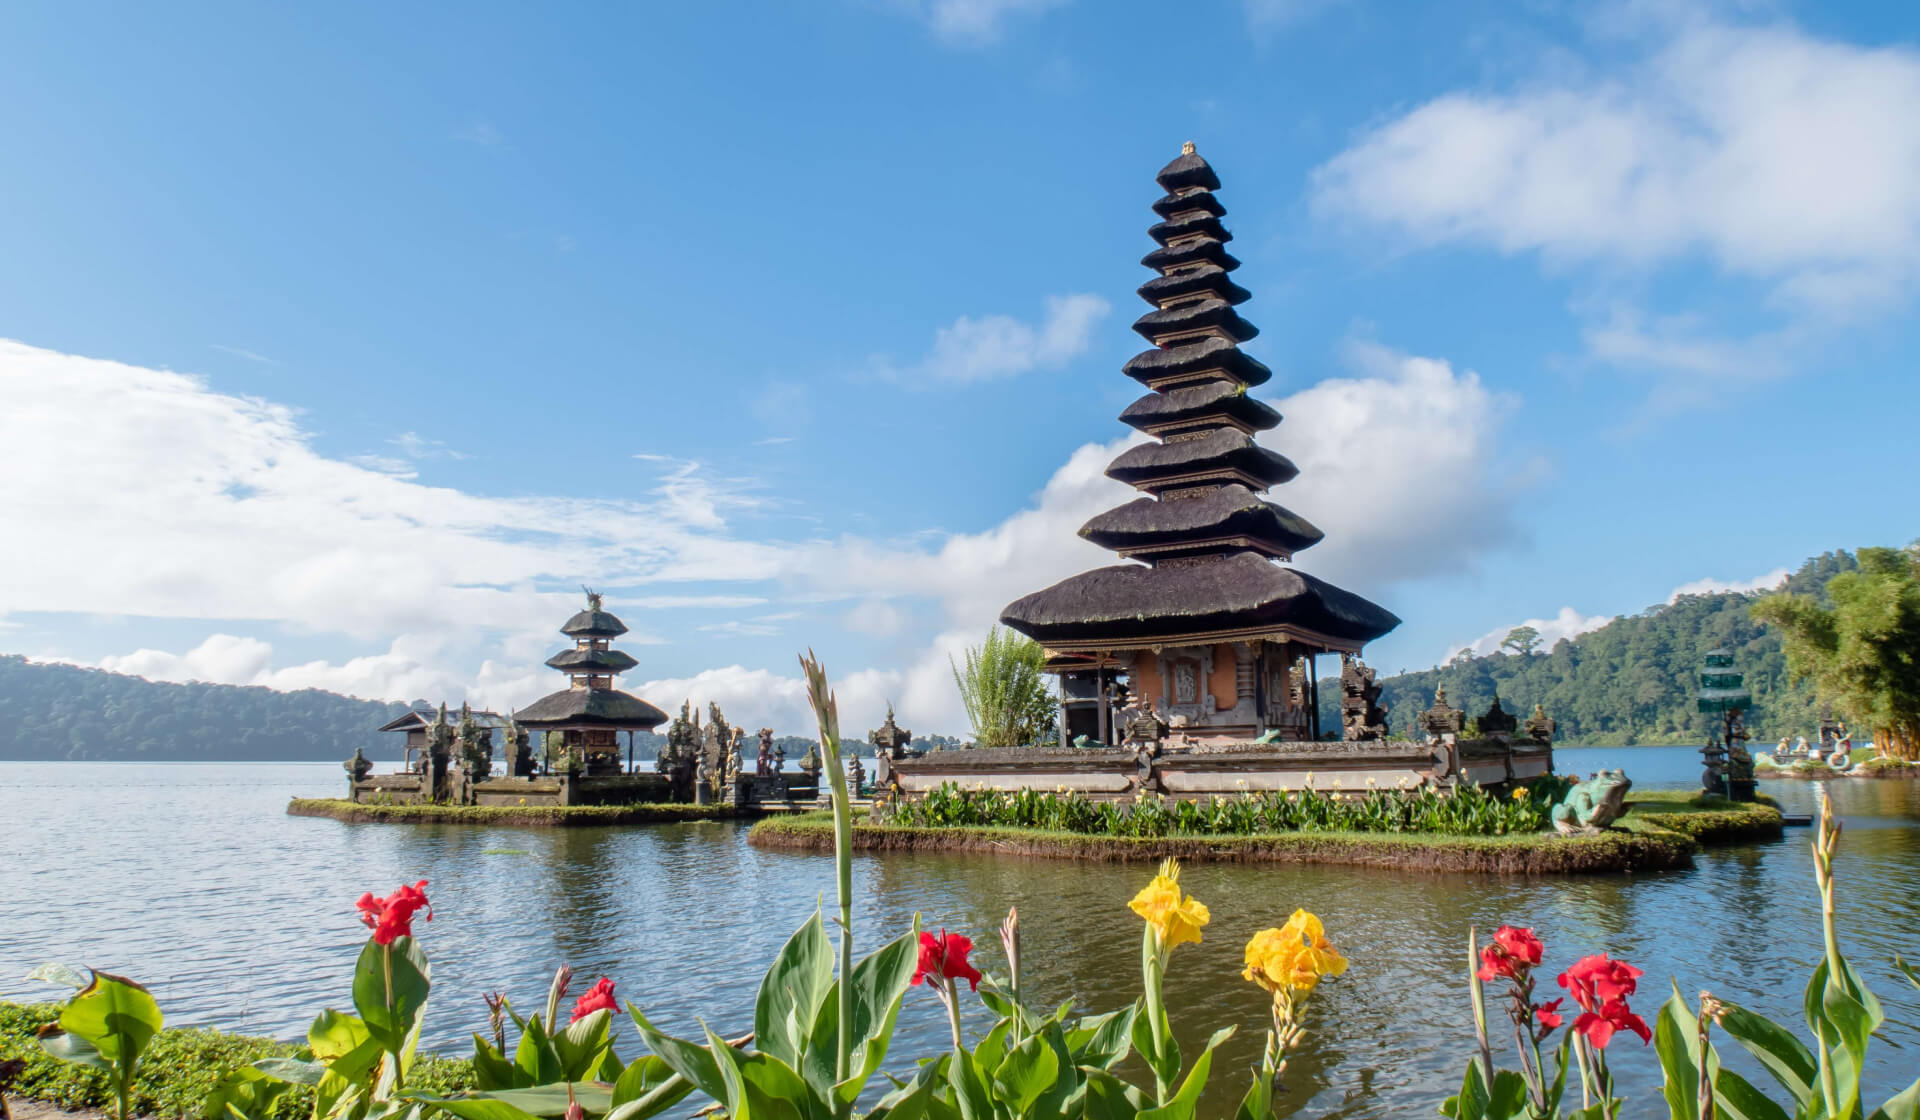 Balinese temples on a lake with colorful flowers and a blue sky